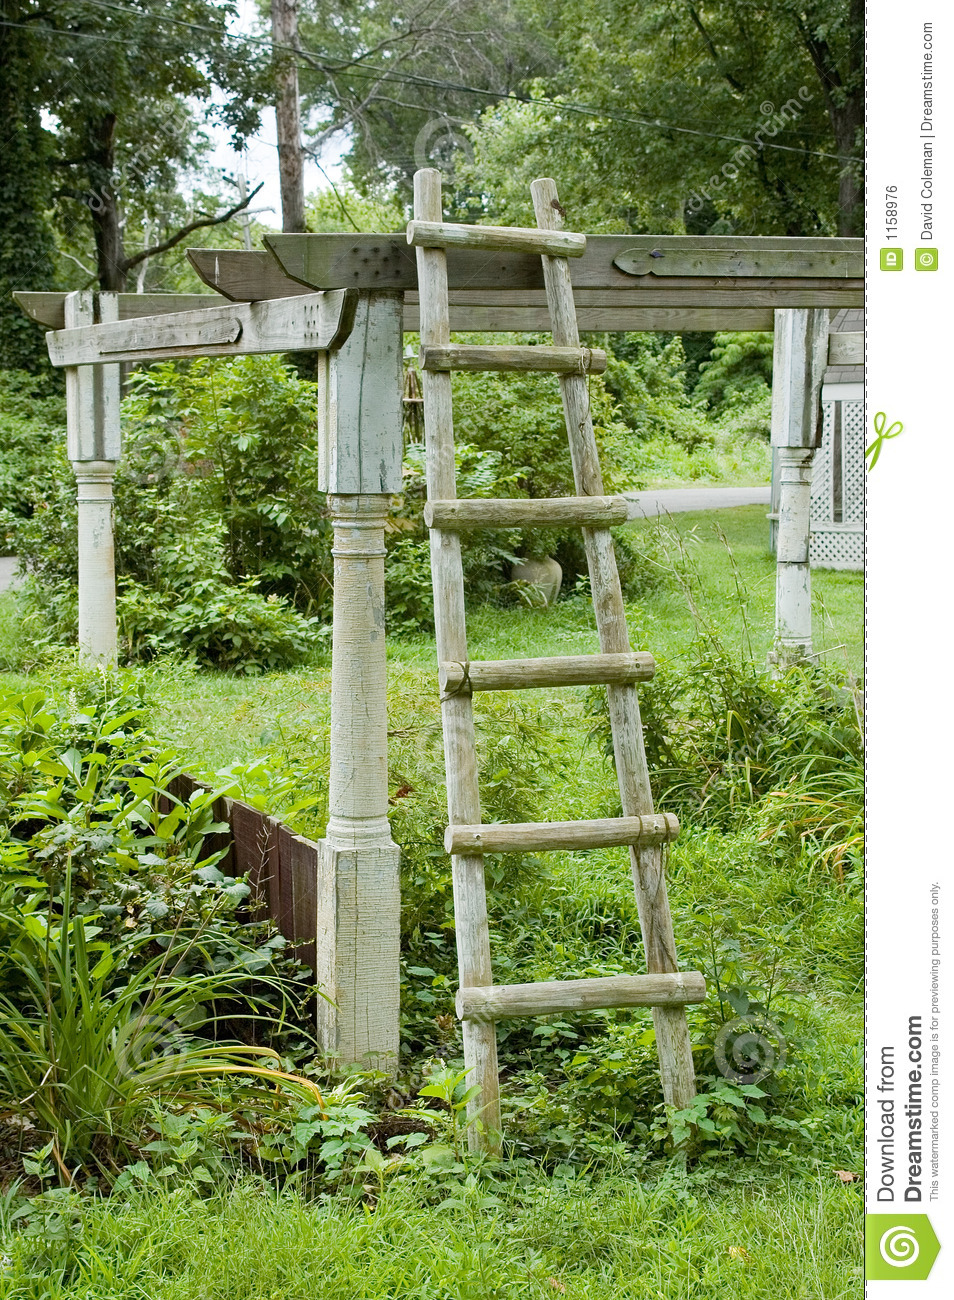 Ladder in Tuin